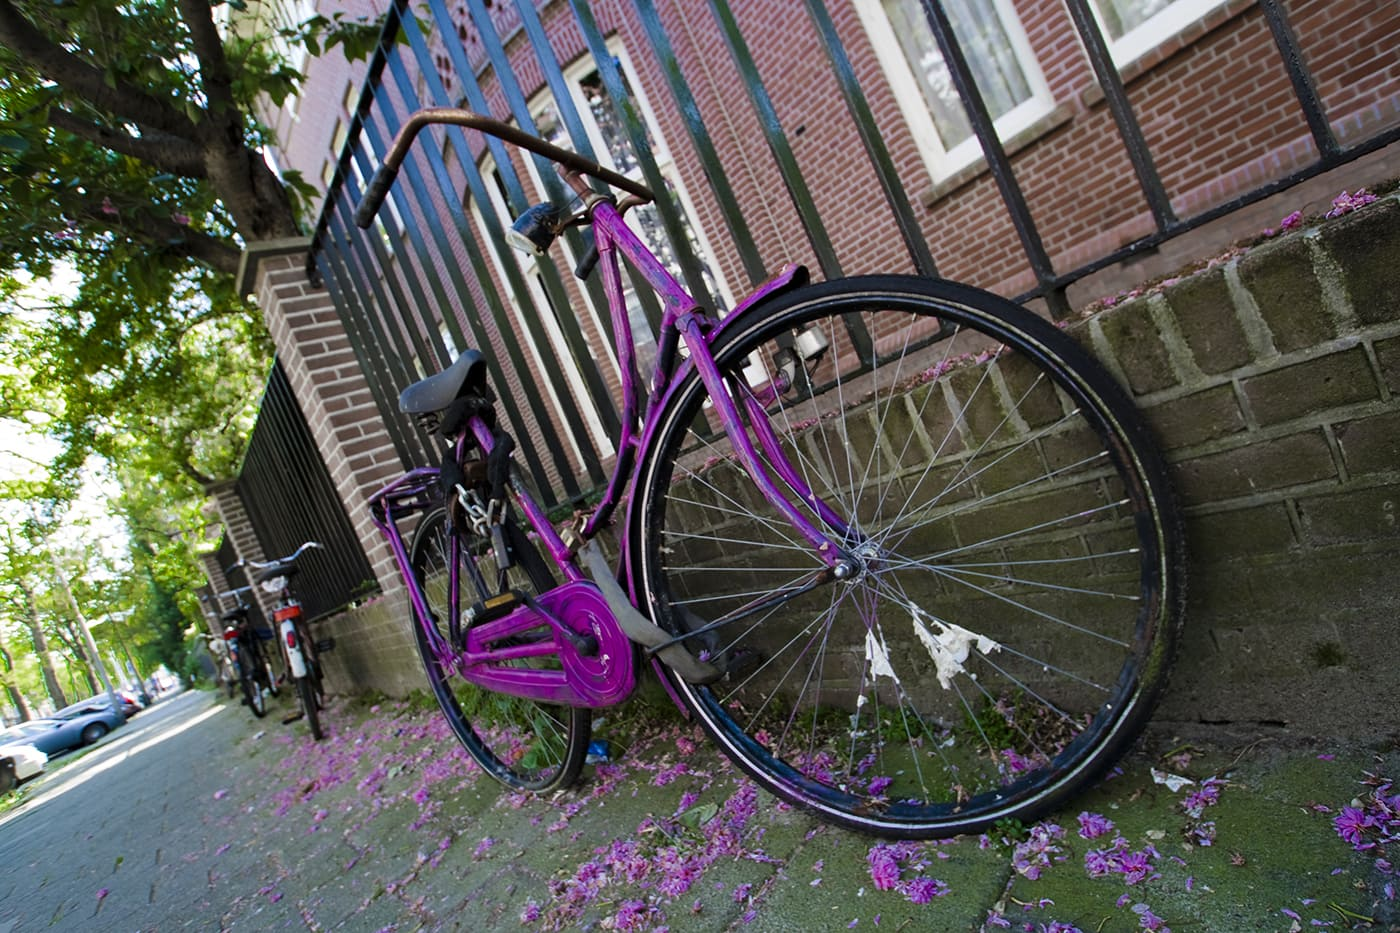 Purple bicycle in Amsterdam, The Netherlands.